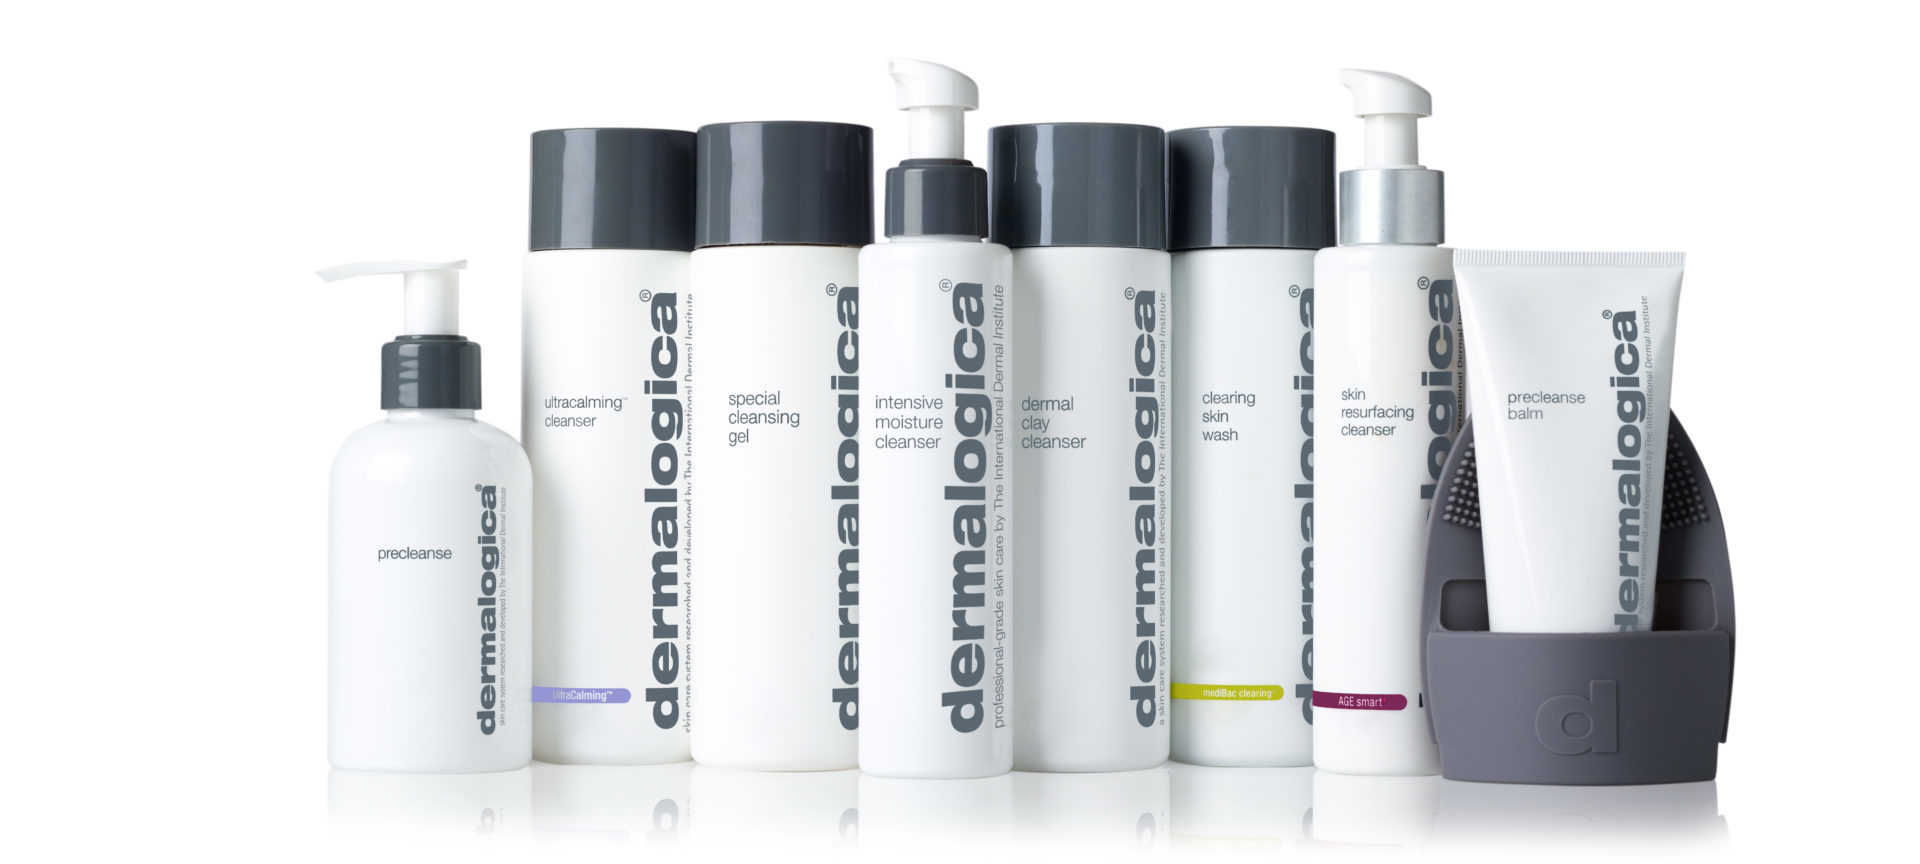 Dermalogica Stockist London Westfield UK